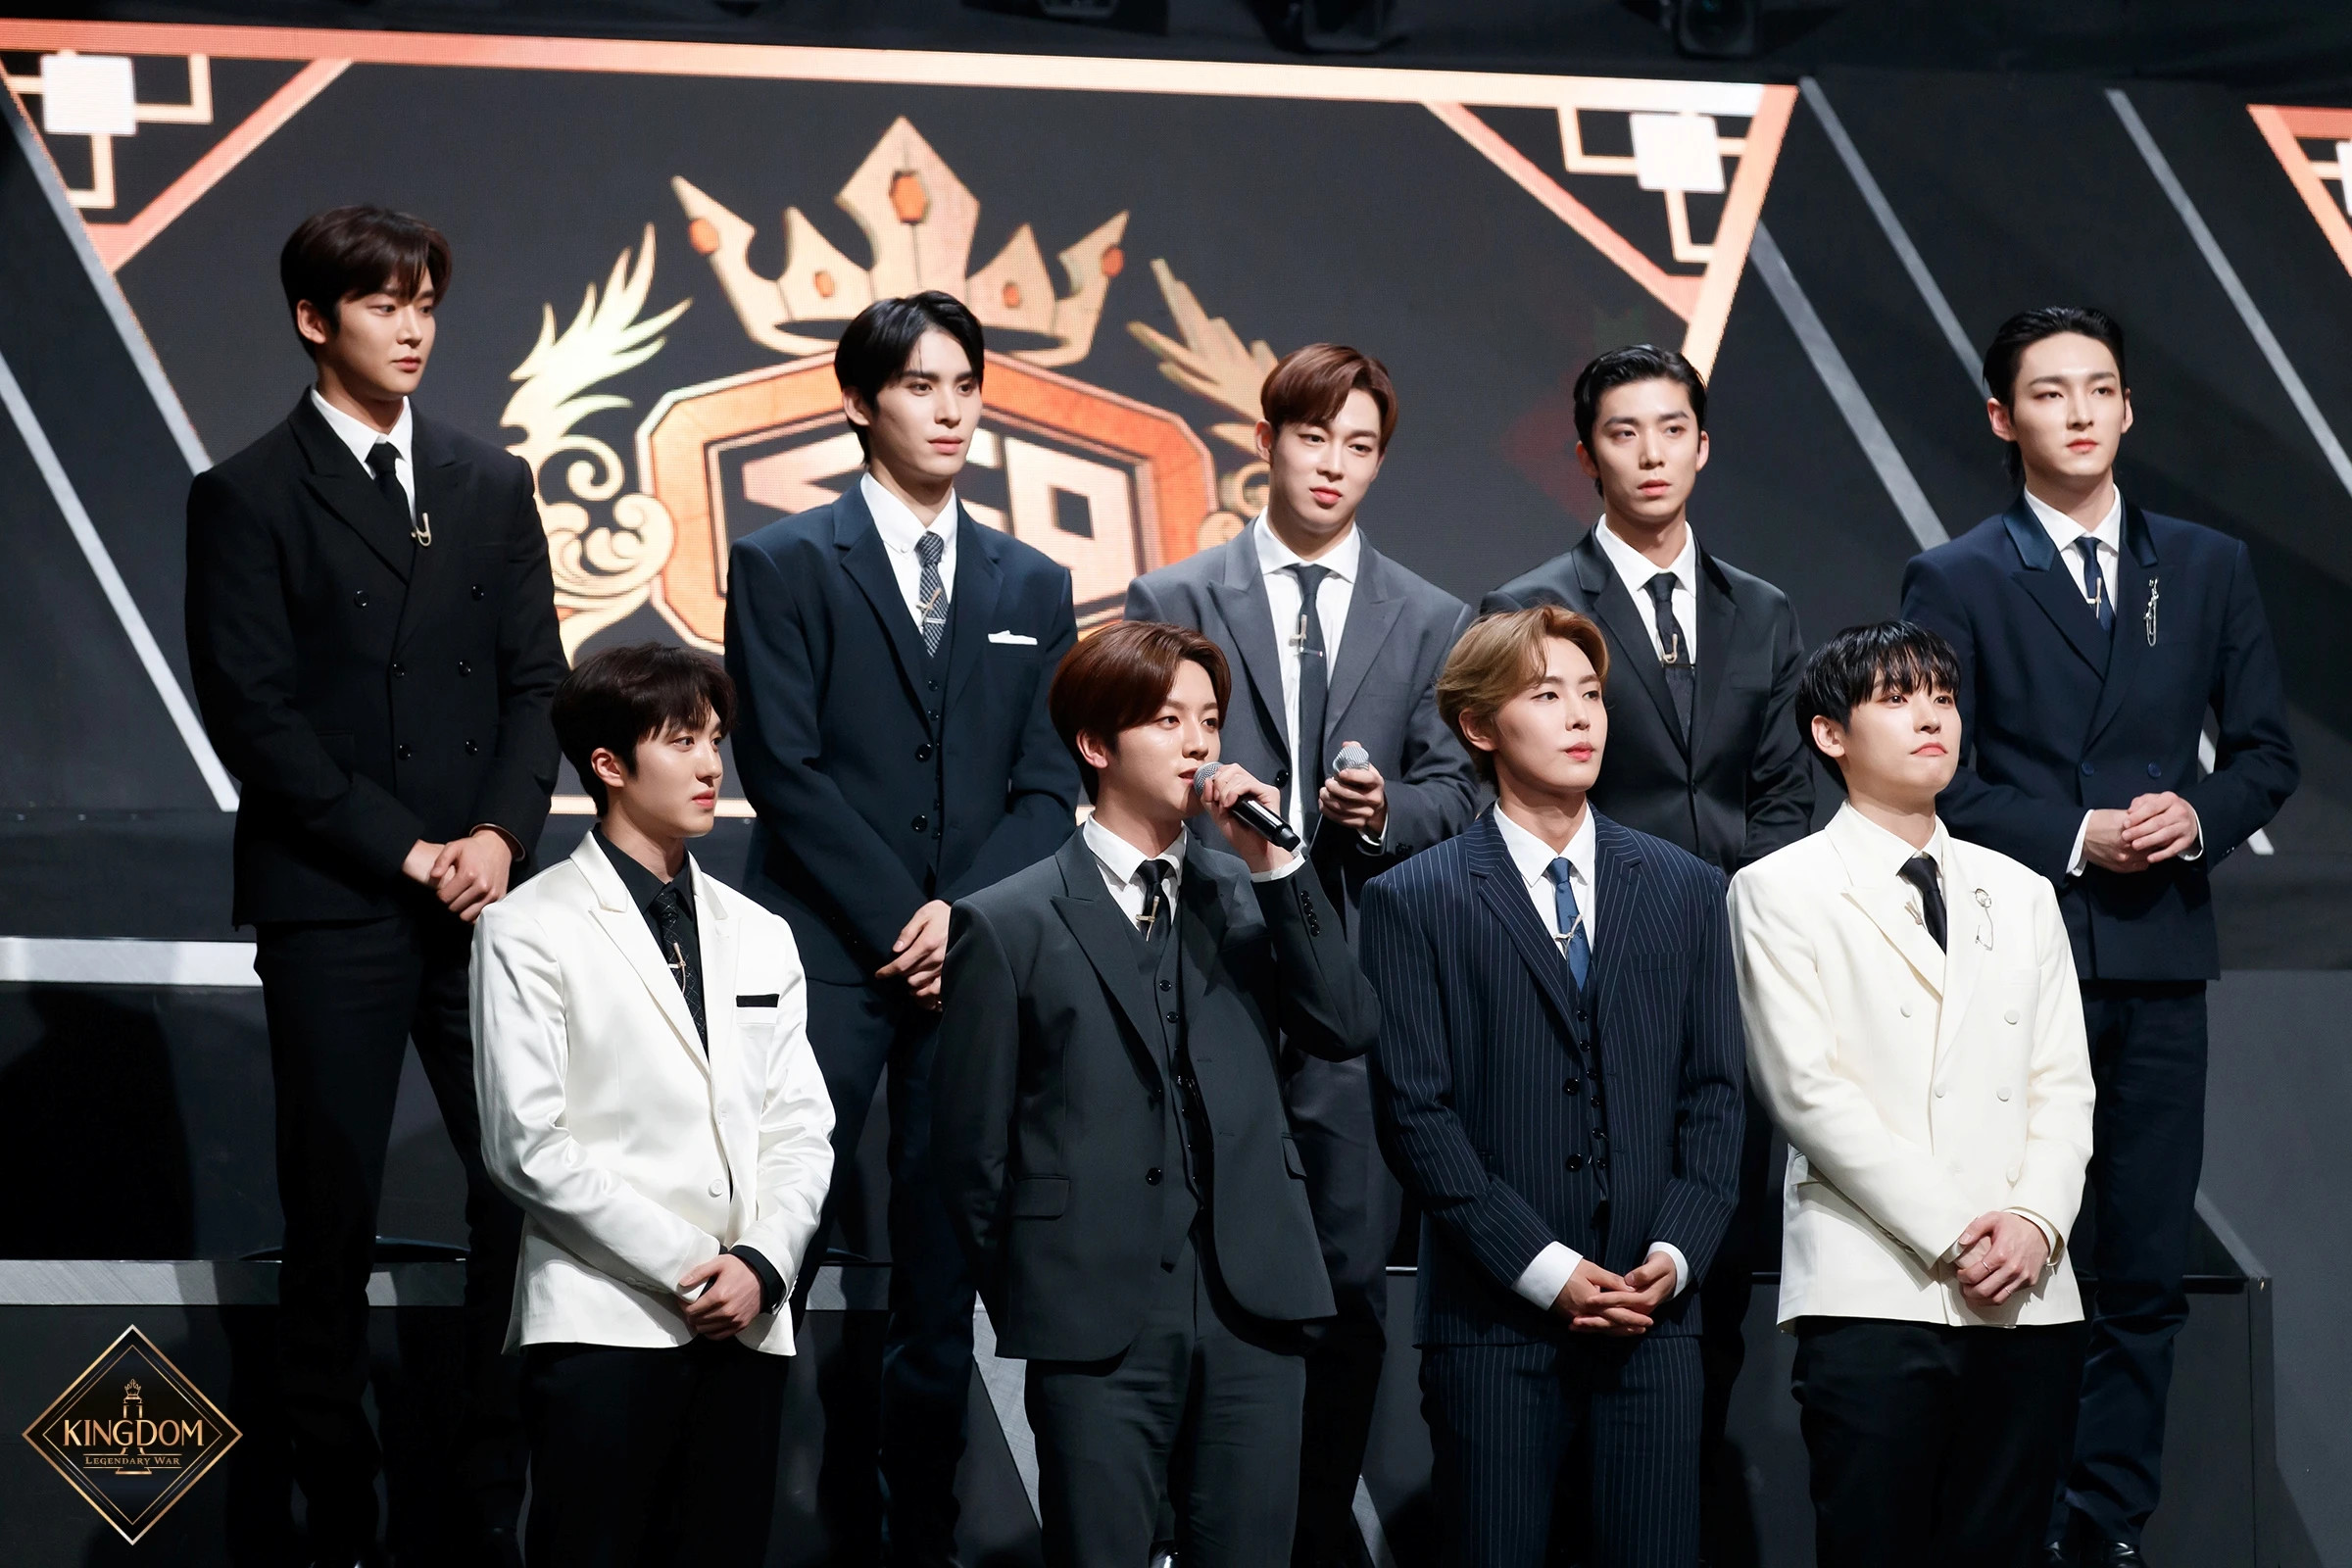 210407-KINGDOM-LEGENDARY-WAR-SF9-Behind-the-Scenes-Photos-at-the-Face-to-Face-Ceremony-Naver-Update-documents-1